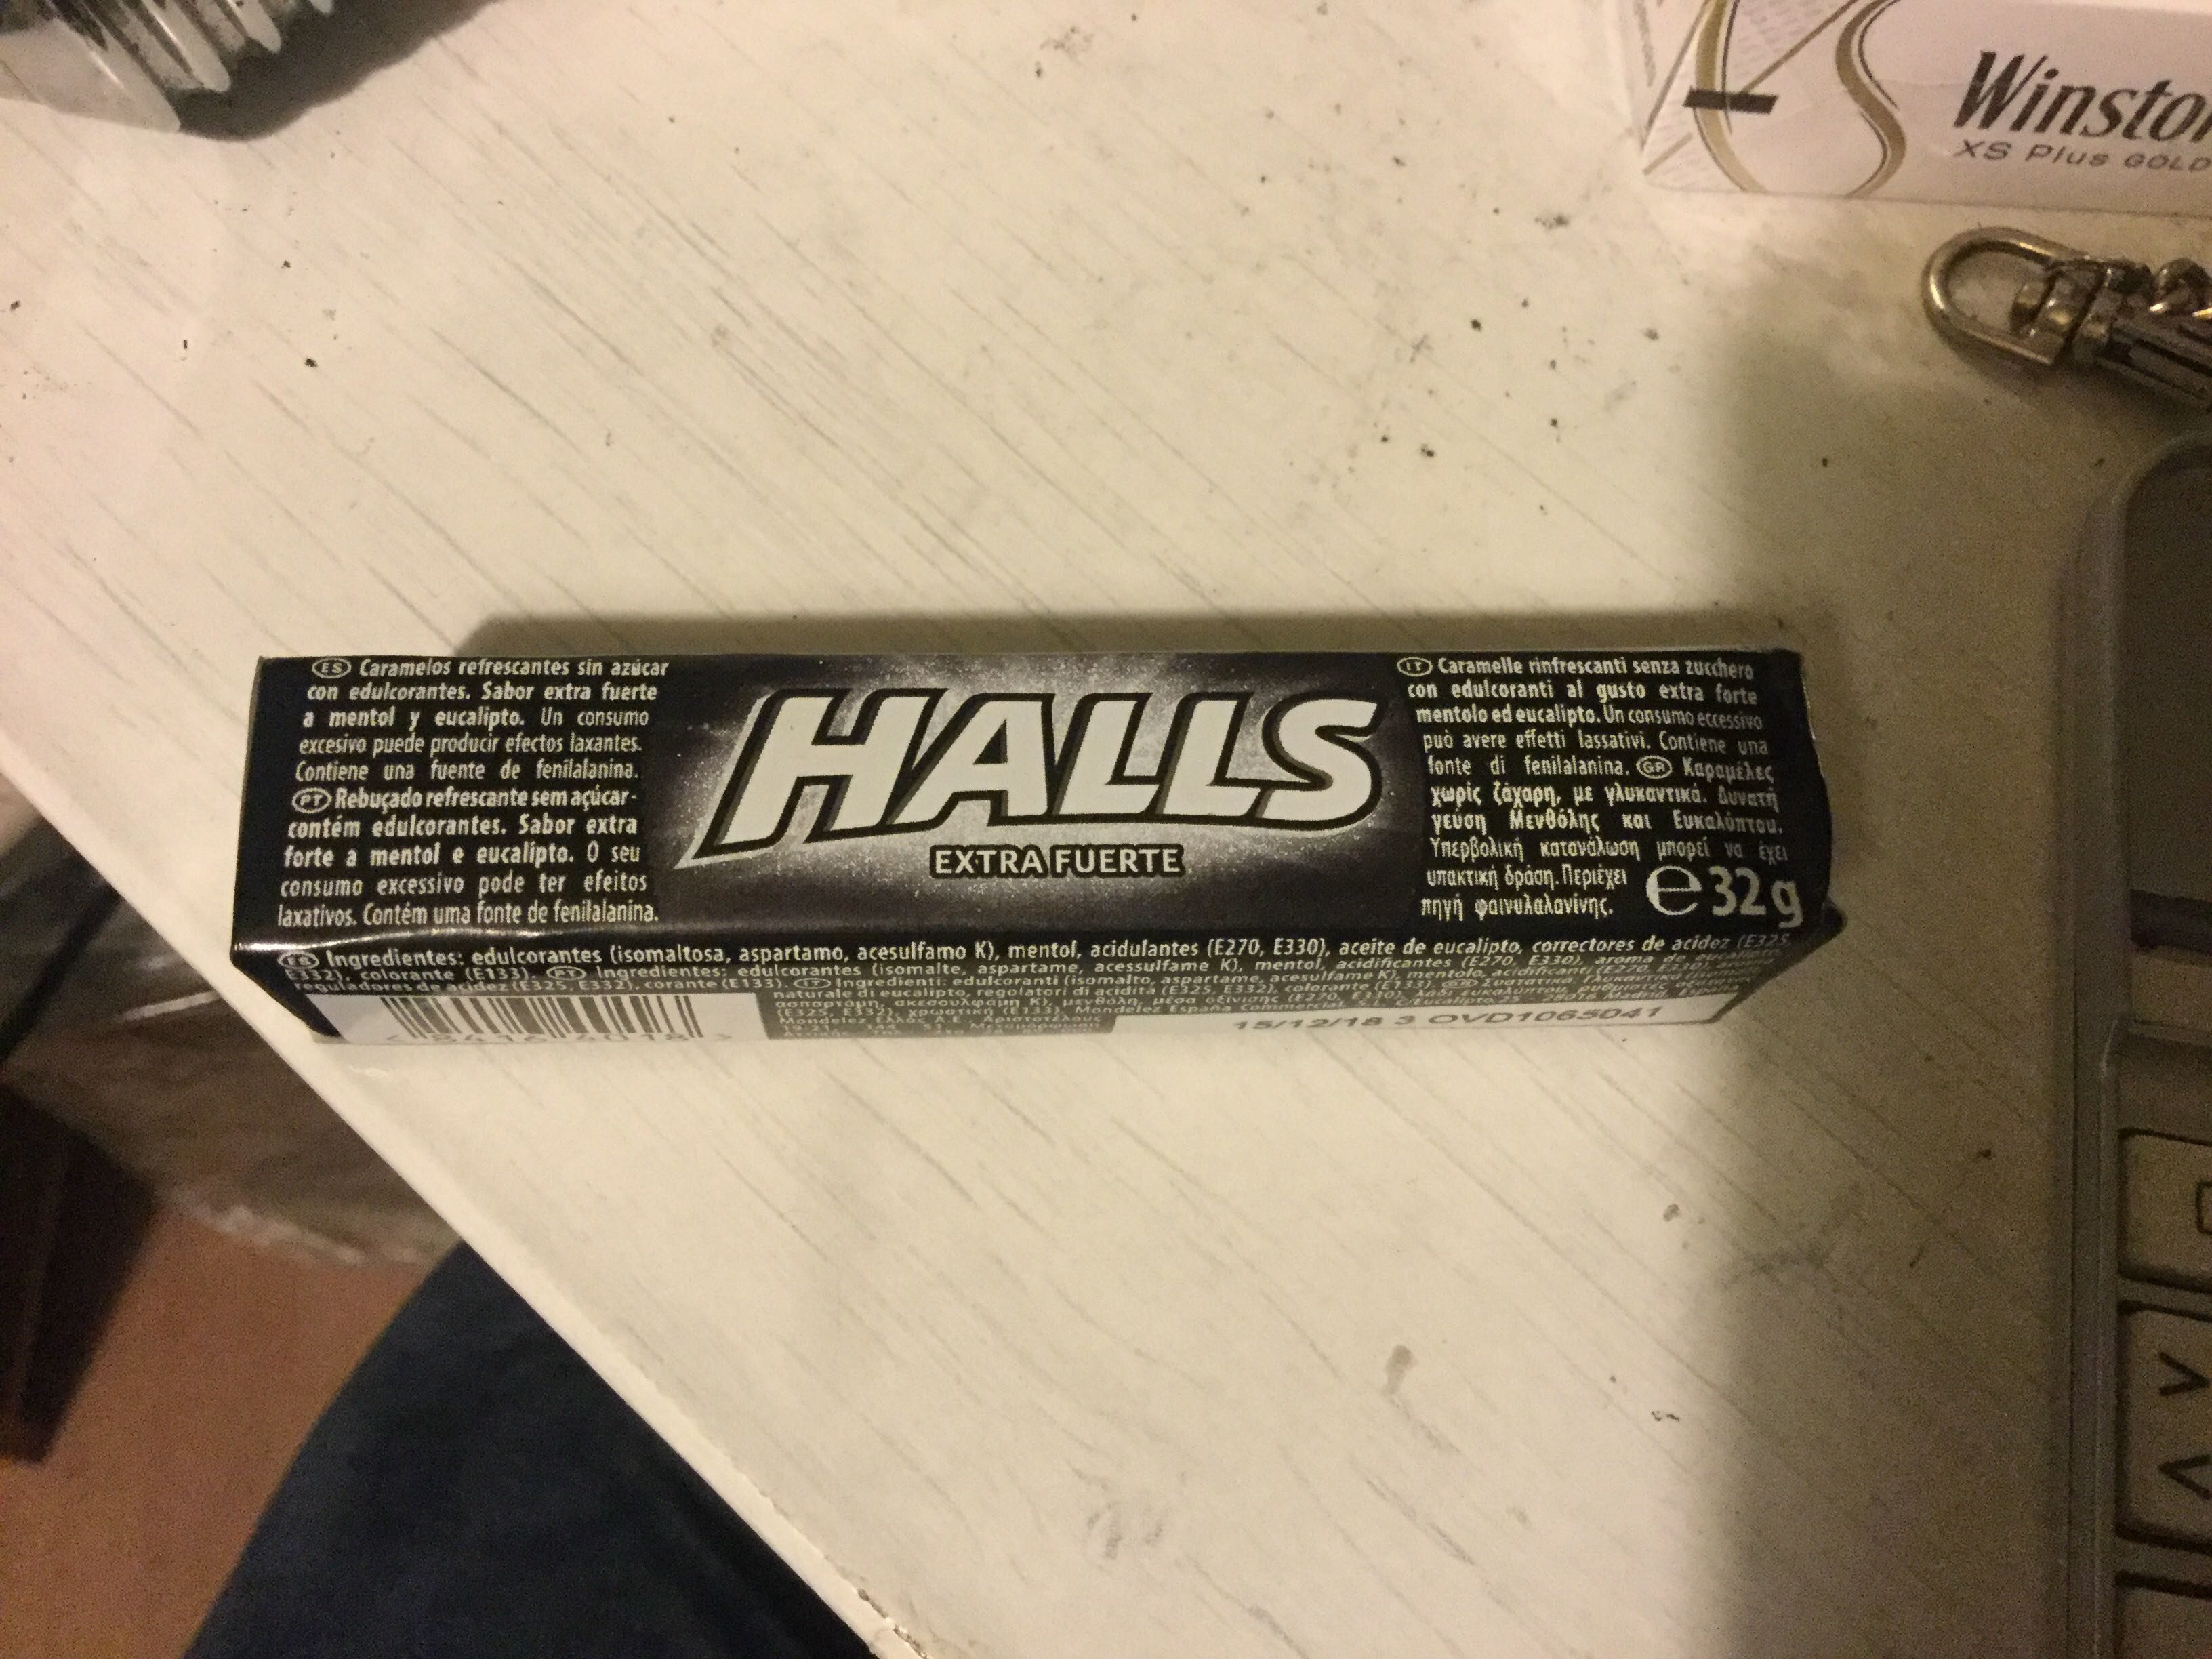 HALLS extra strong - Producto